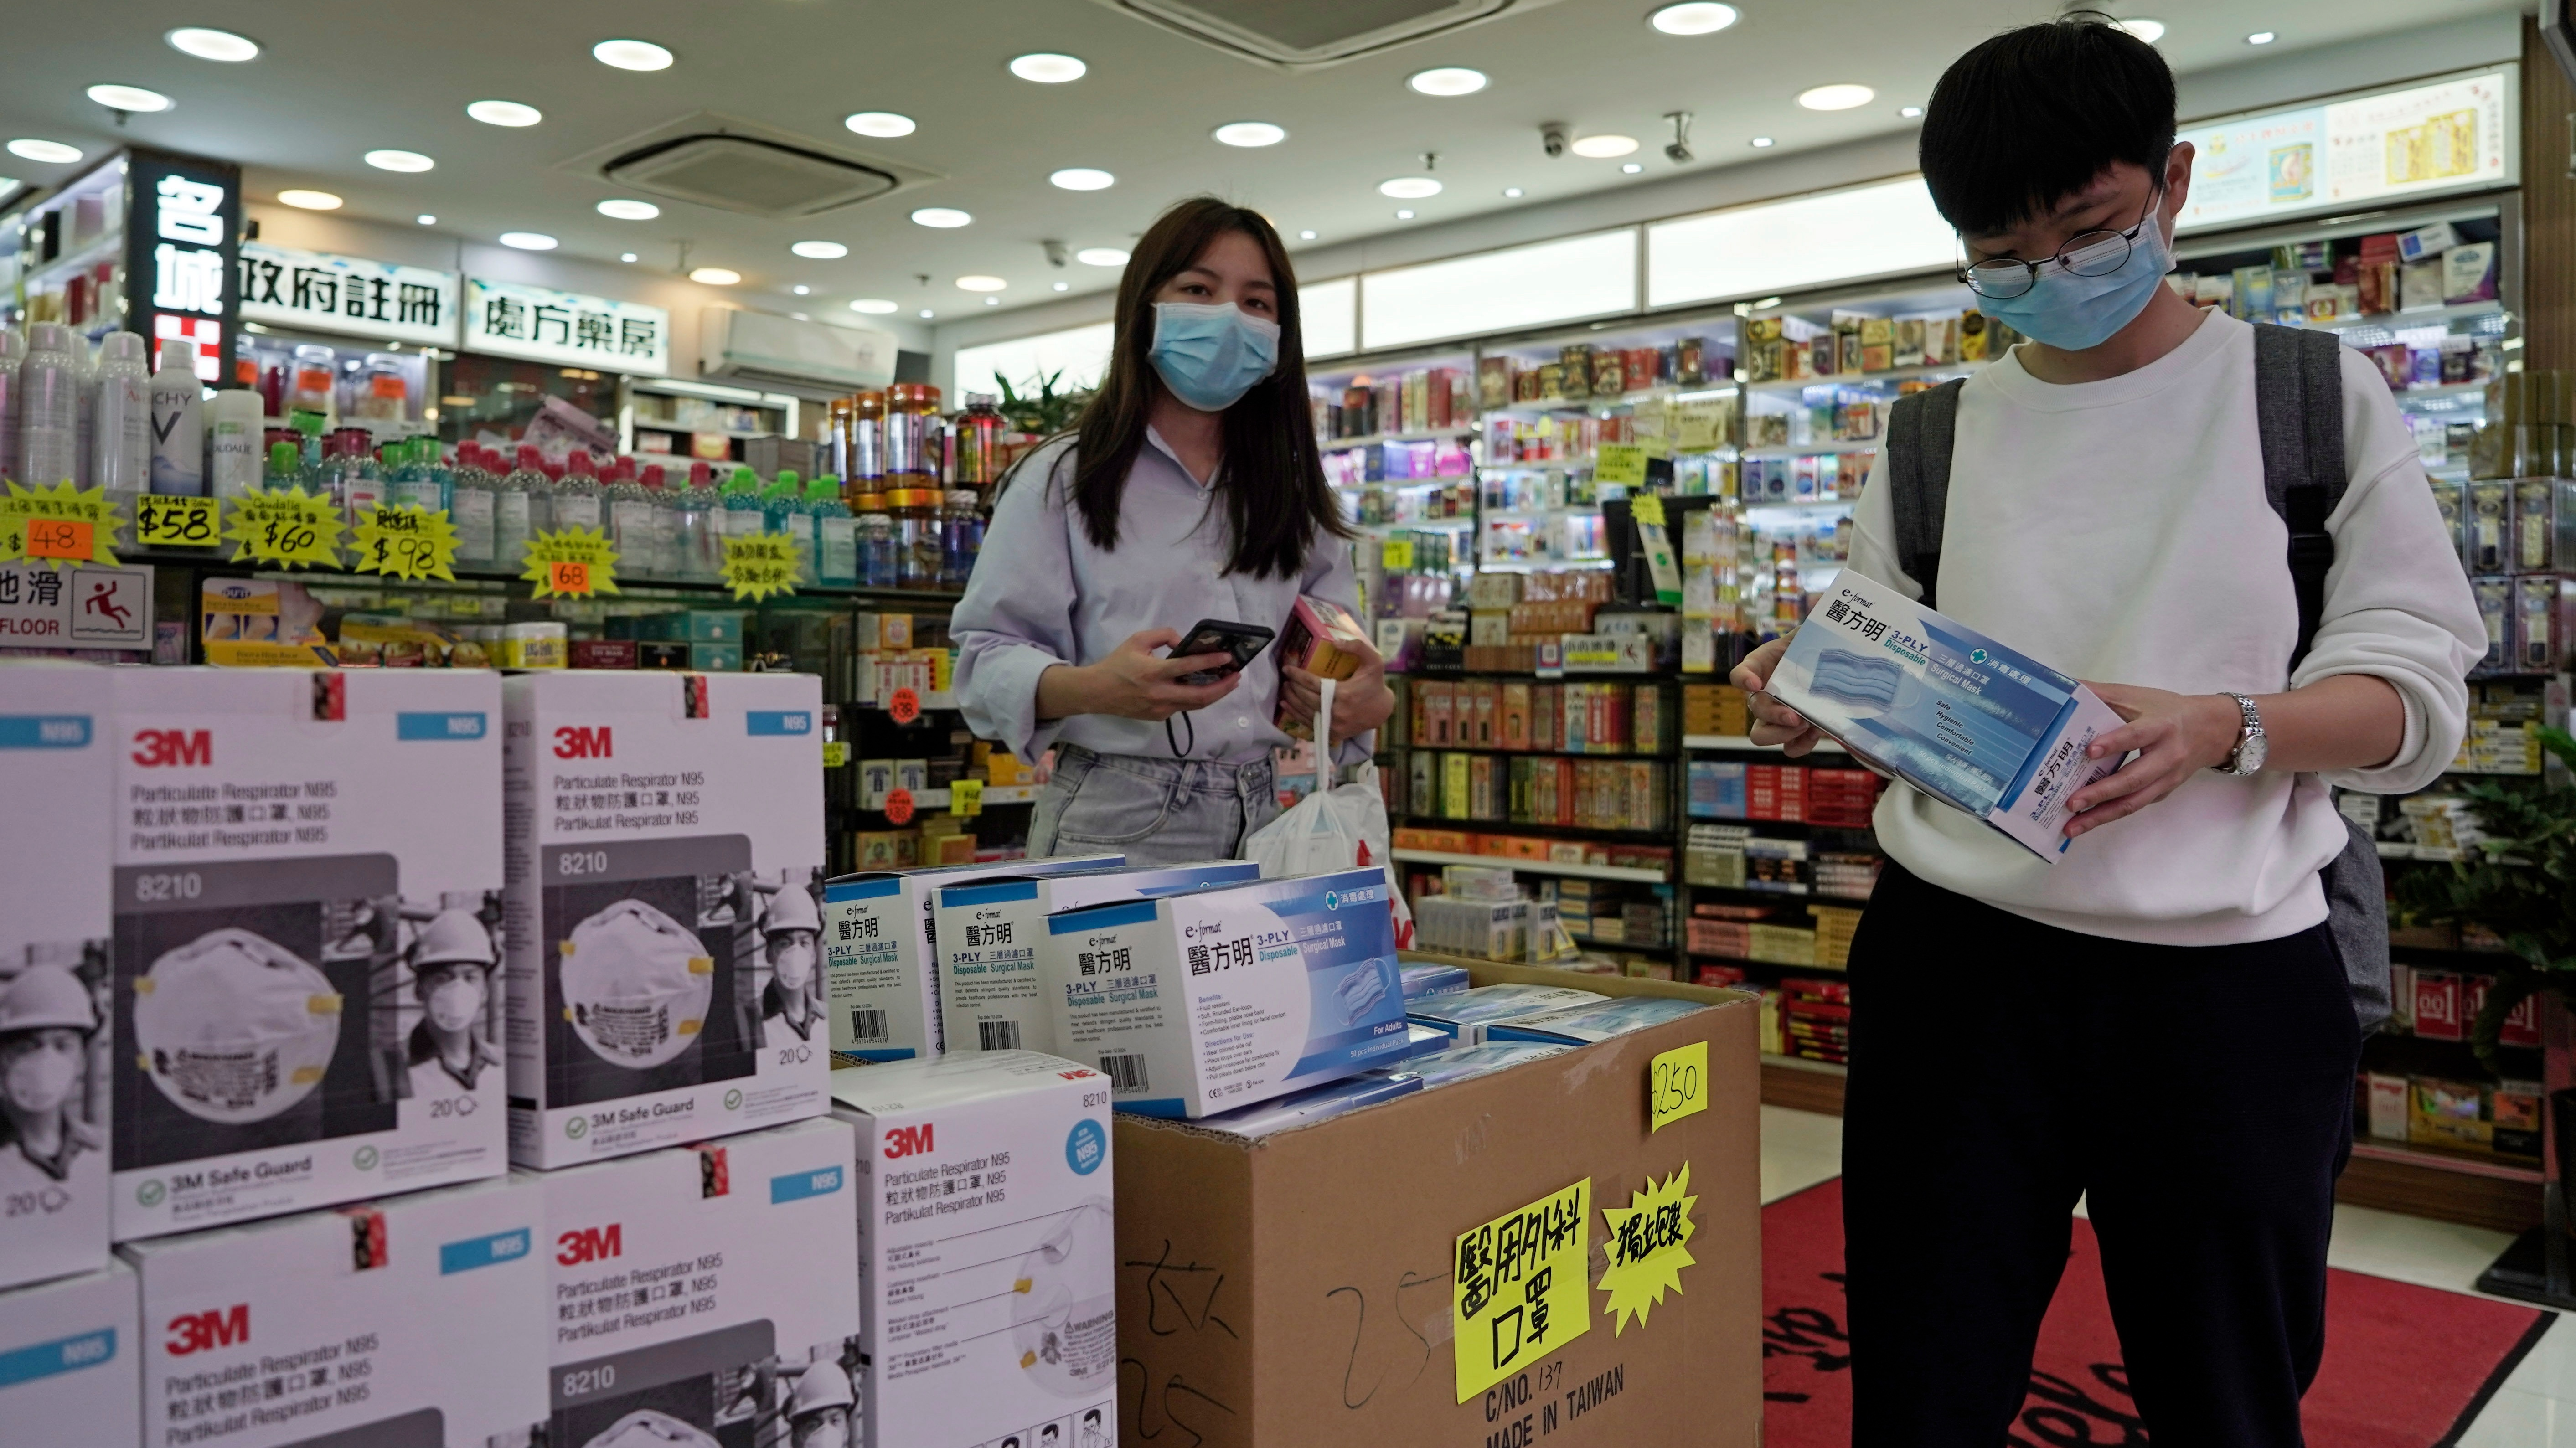 Face Spurs Hong Panic - Masks Bnn Kong In Virus Buying Bloomberg Of